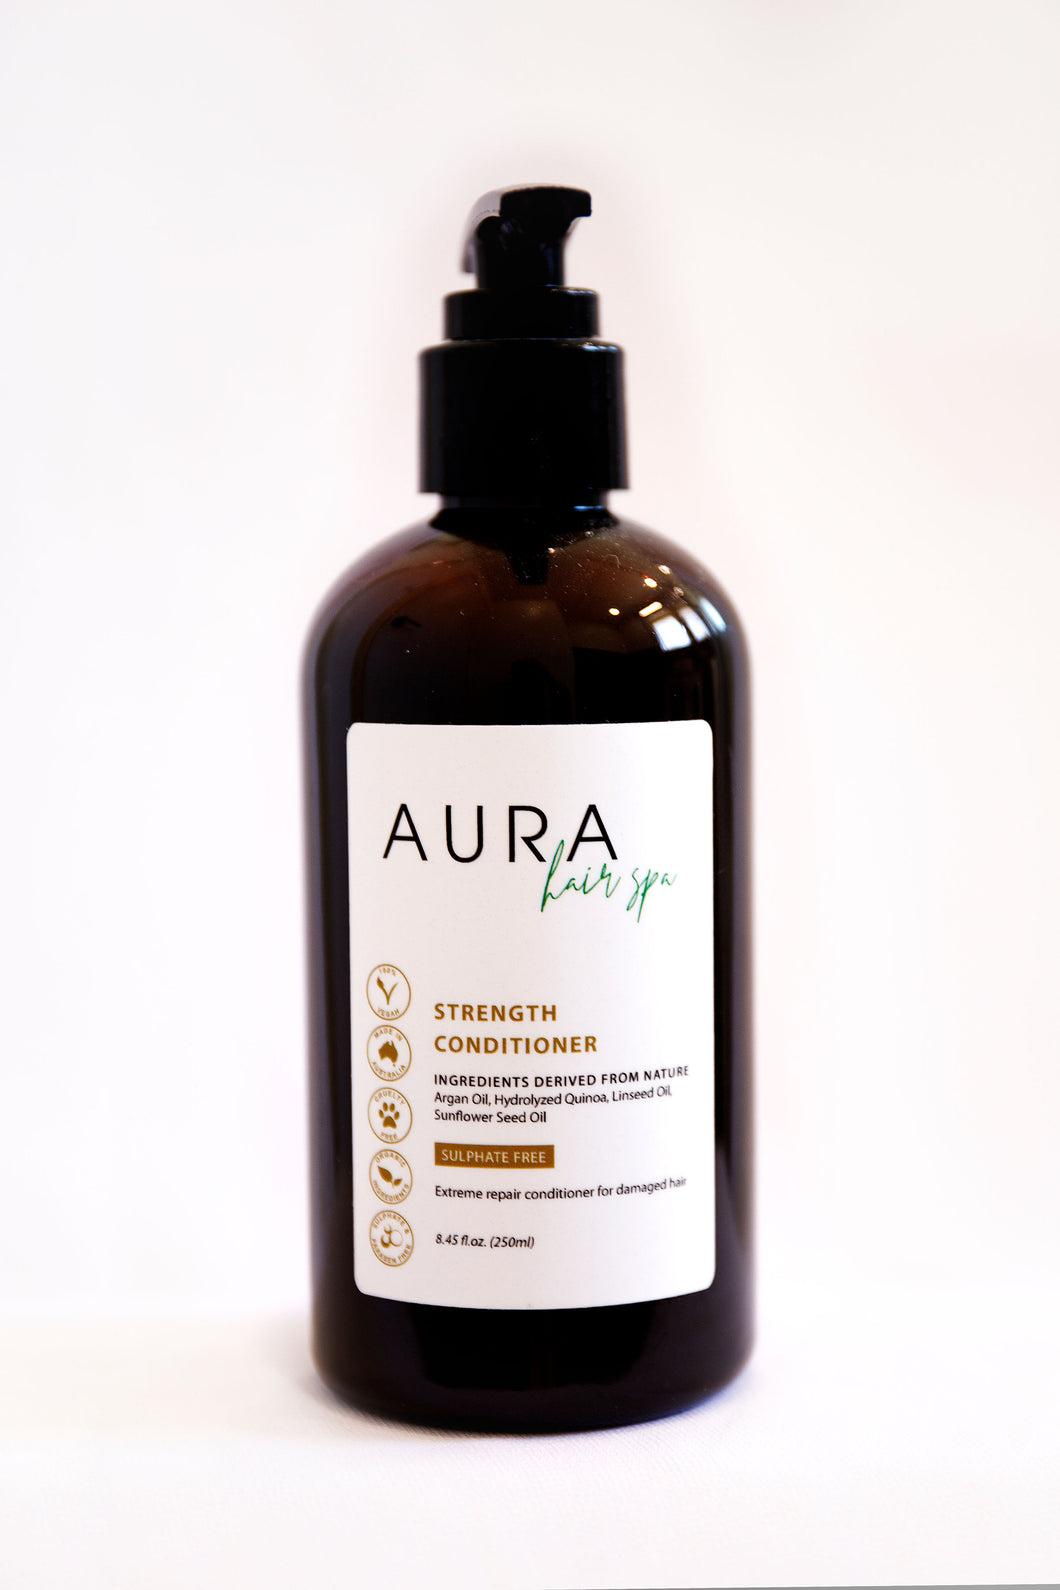 Aura Hair Spa Strength Conditioner 250ml